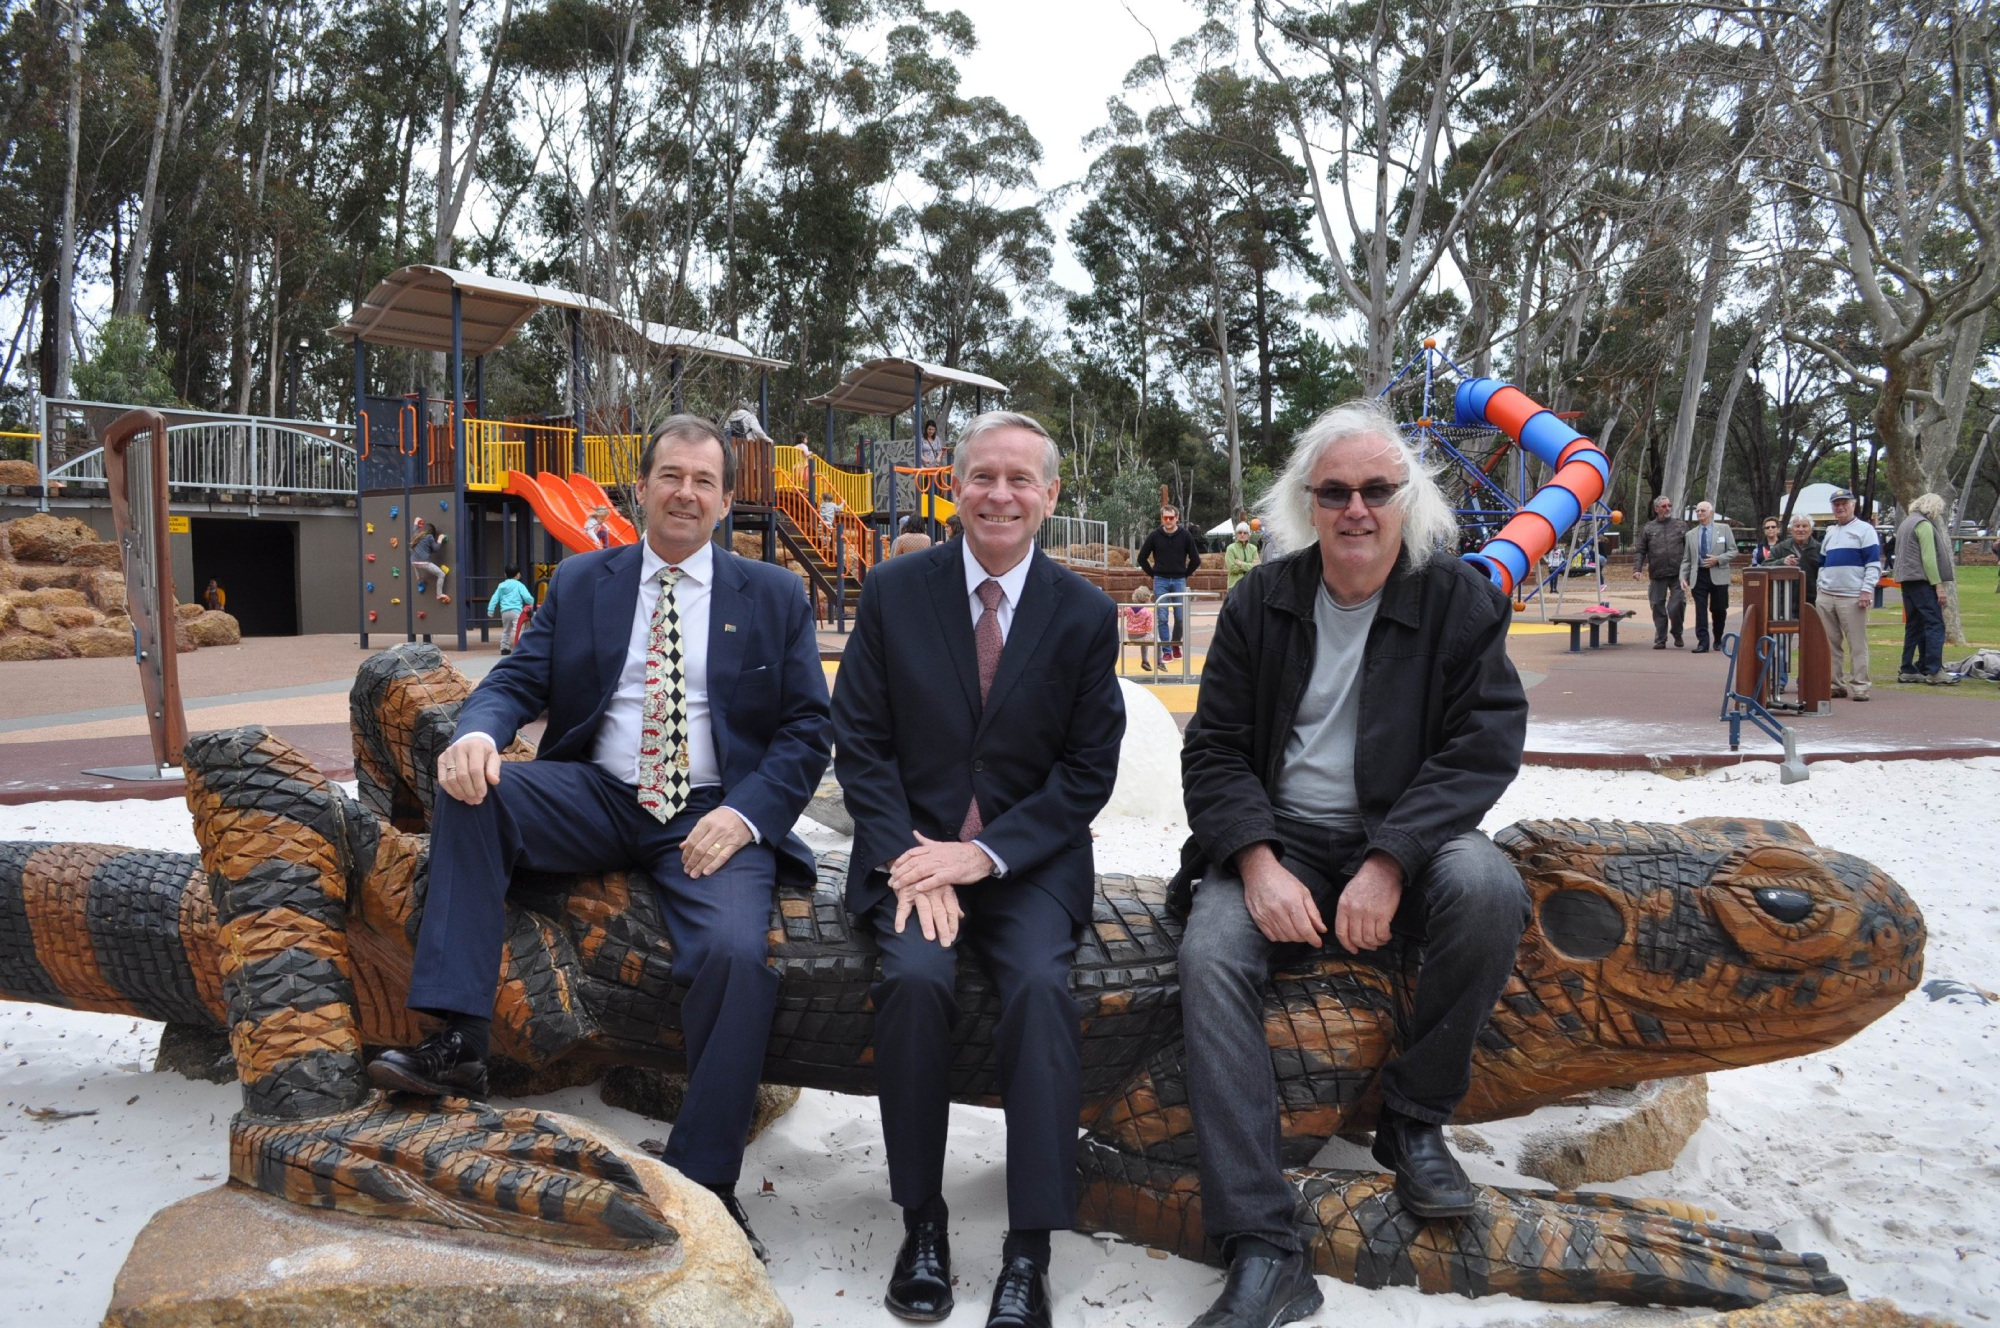 Premier on hand to open upgraded Mundaring Community Sculpture Park